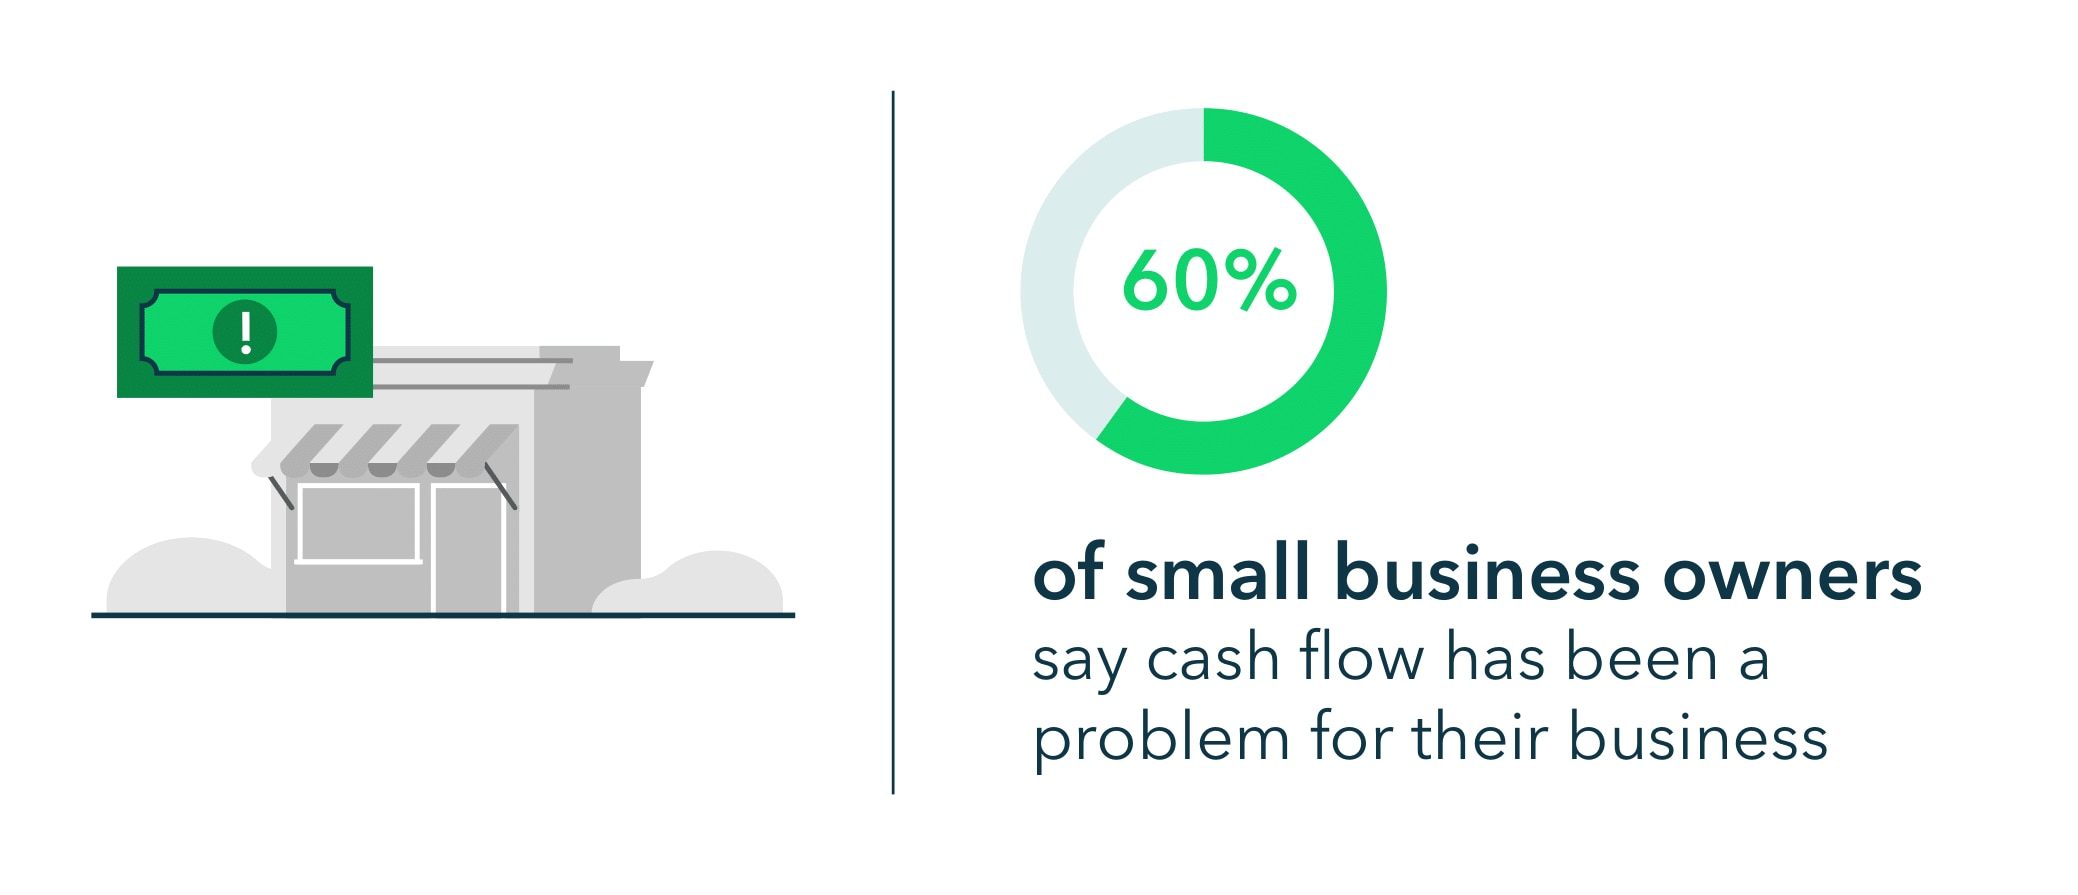 60% of small business owners say cash flow has been a problem for their business.